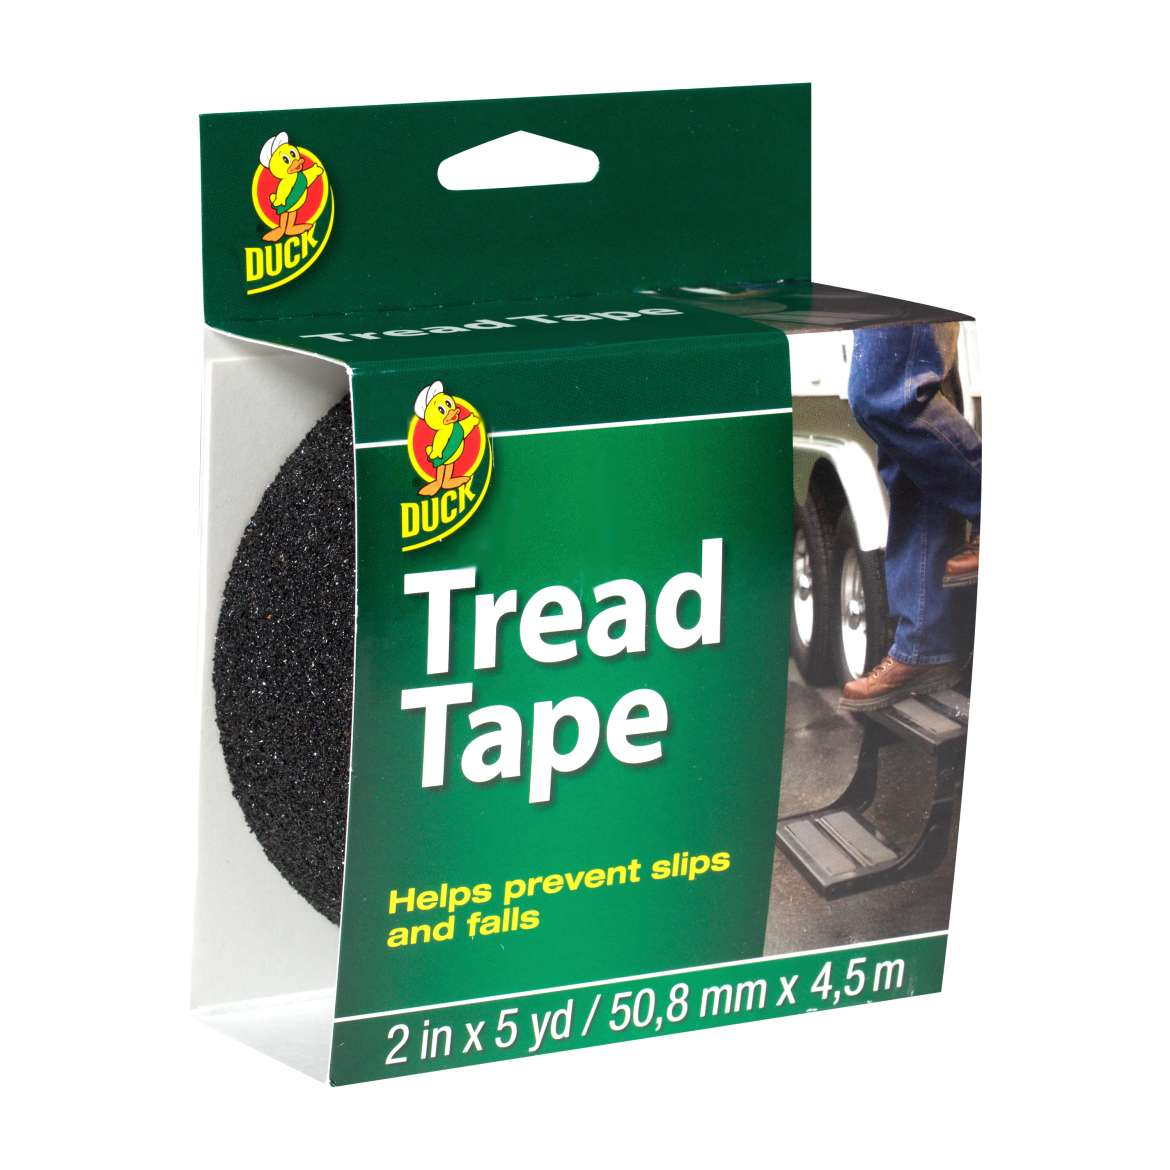 Duck® Brand Tread Tape - Black, 2 in. x 5 yd. Image